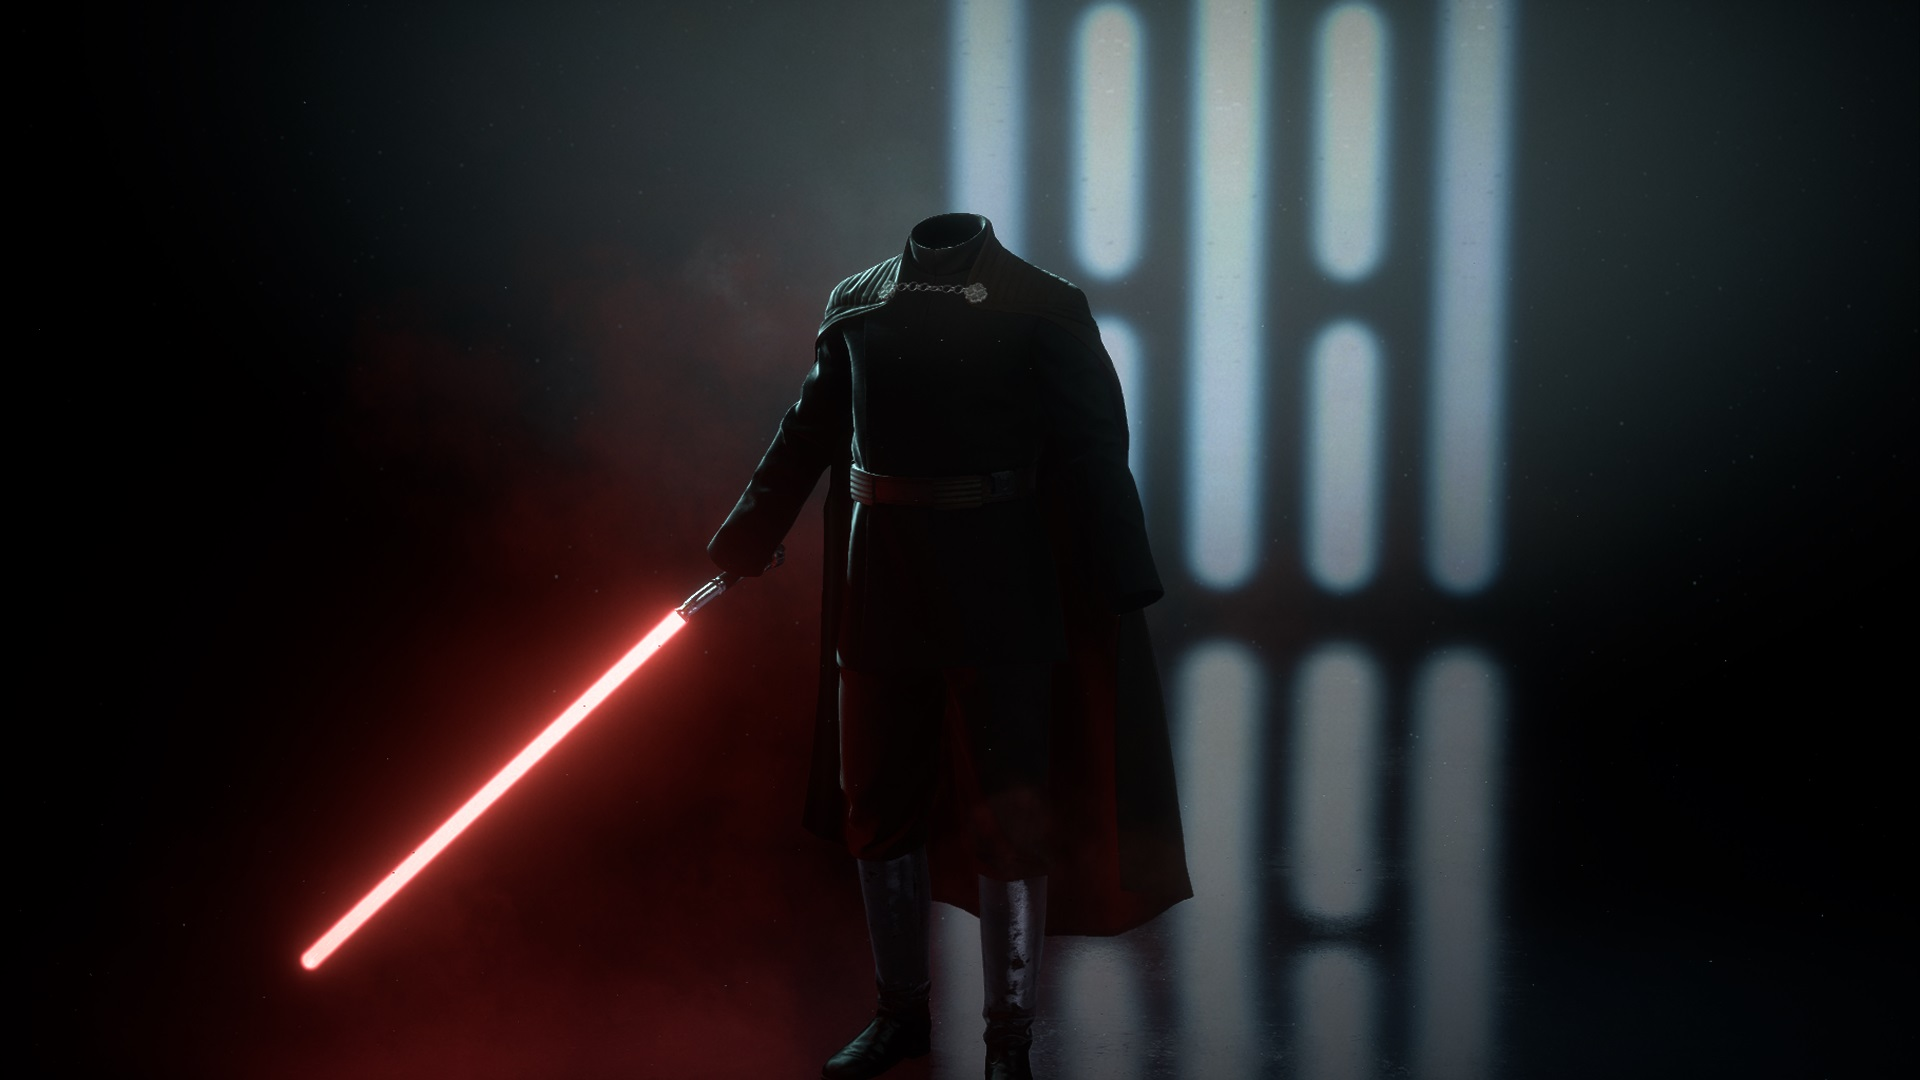 FINALE TÉLÉCHARGER COUNT AND WITH CONFRONTATION DOOKU